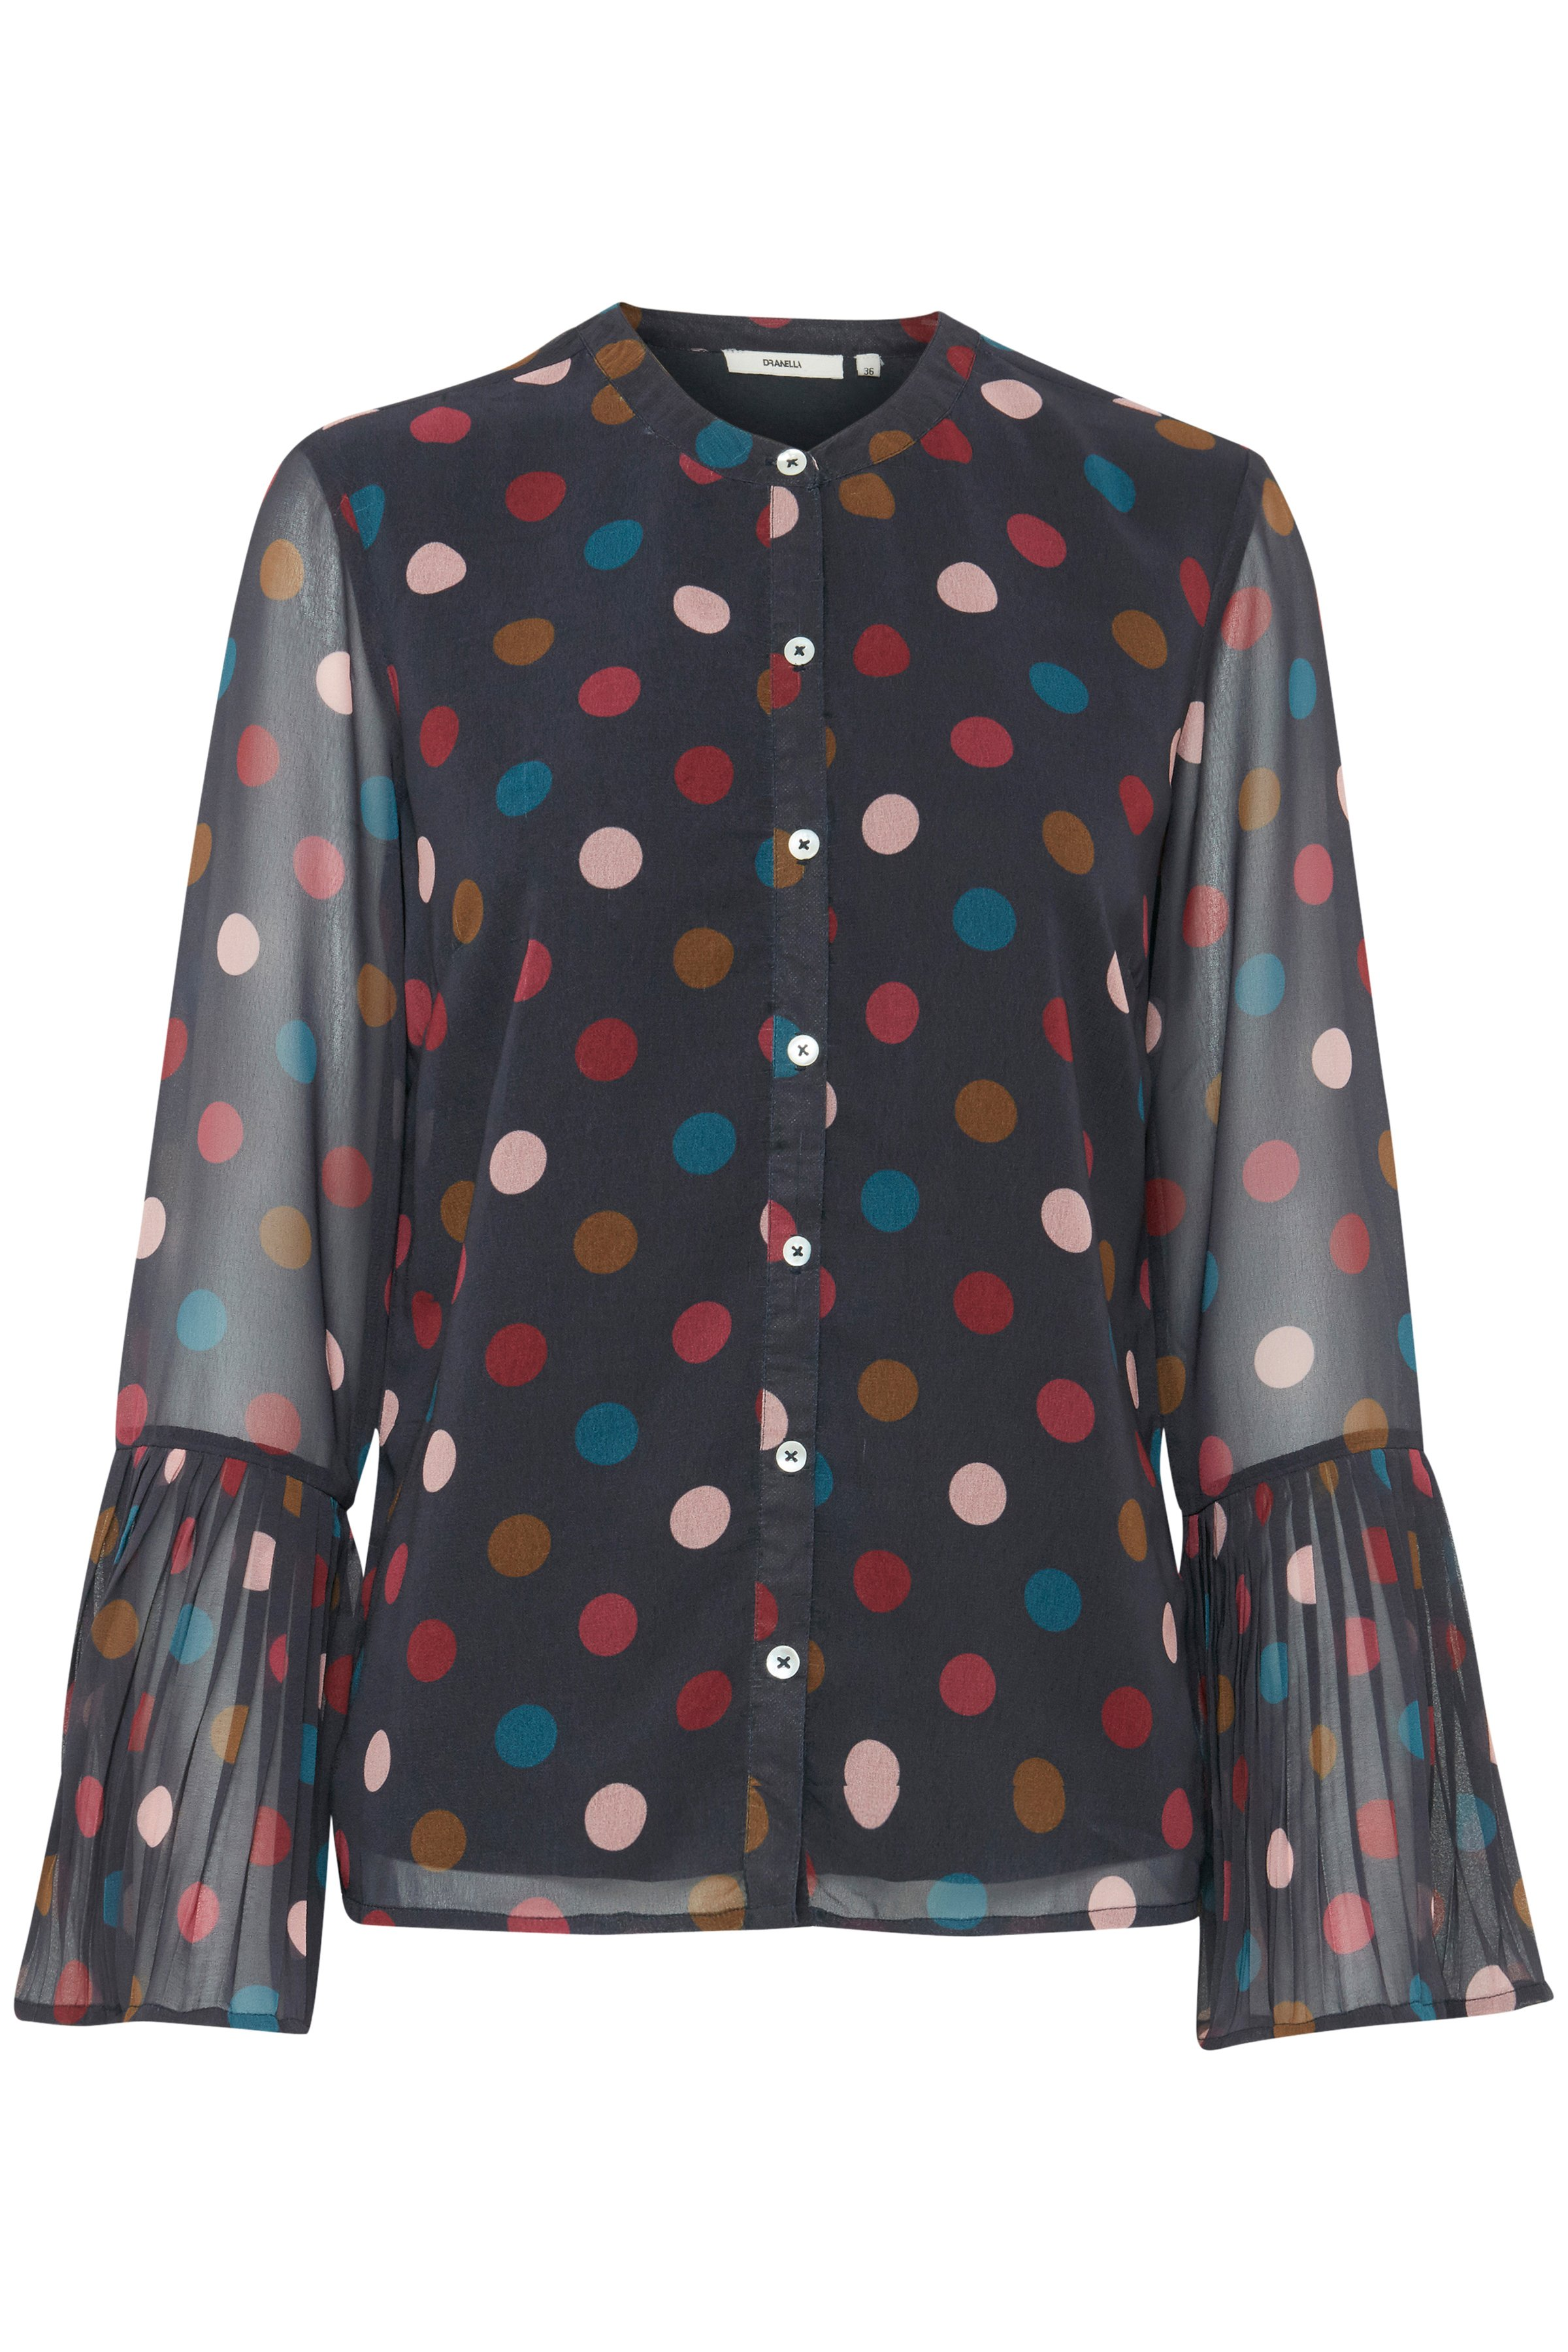 Dranella Dame Blouse lange mouw - Donkerblauw/rood